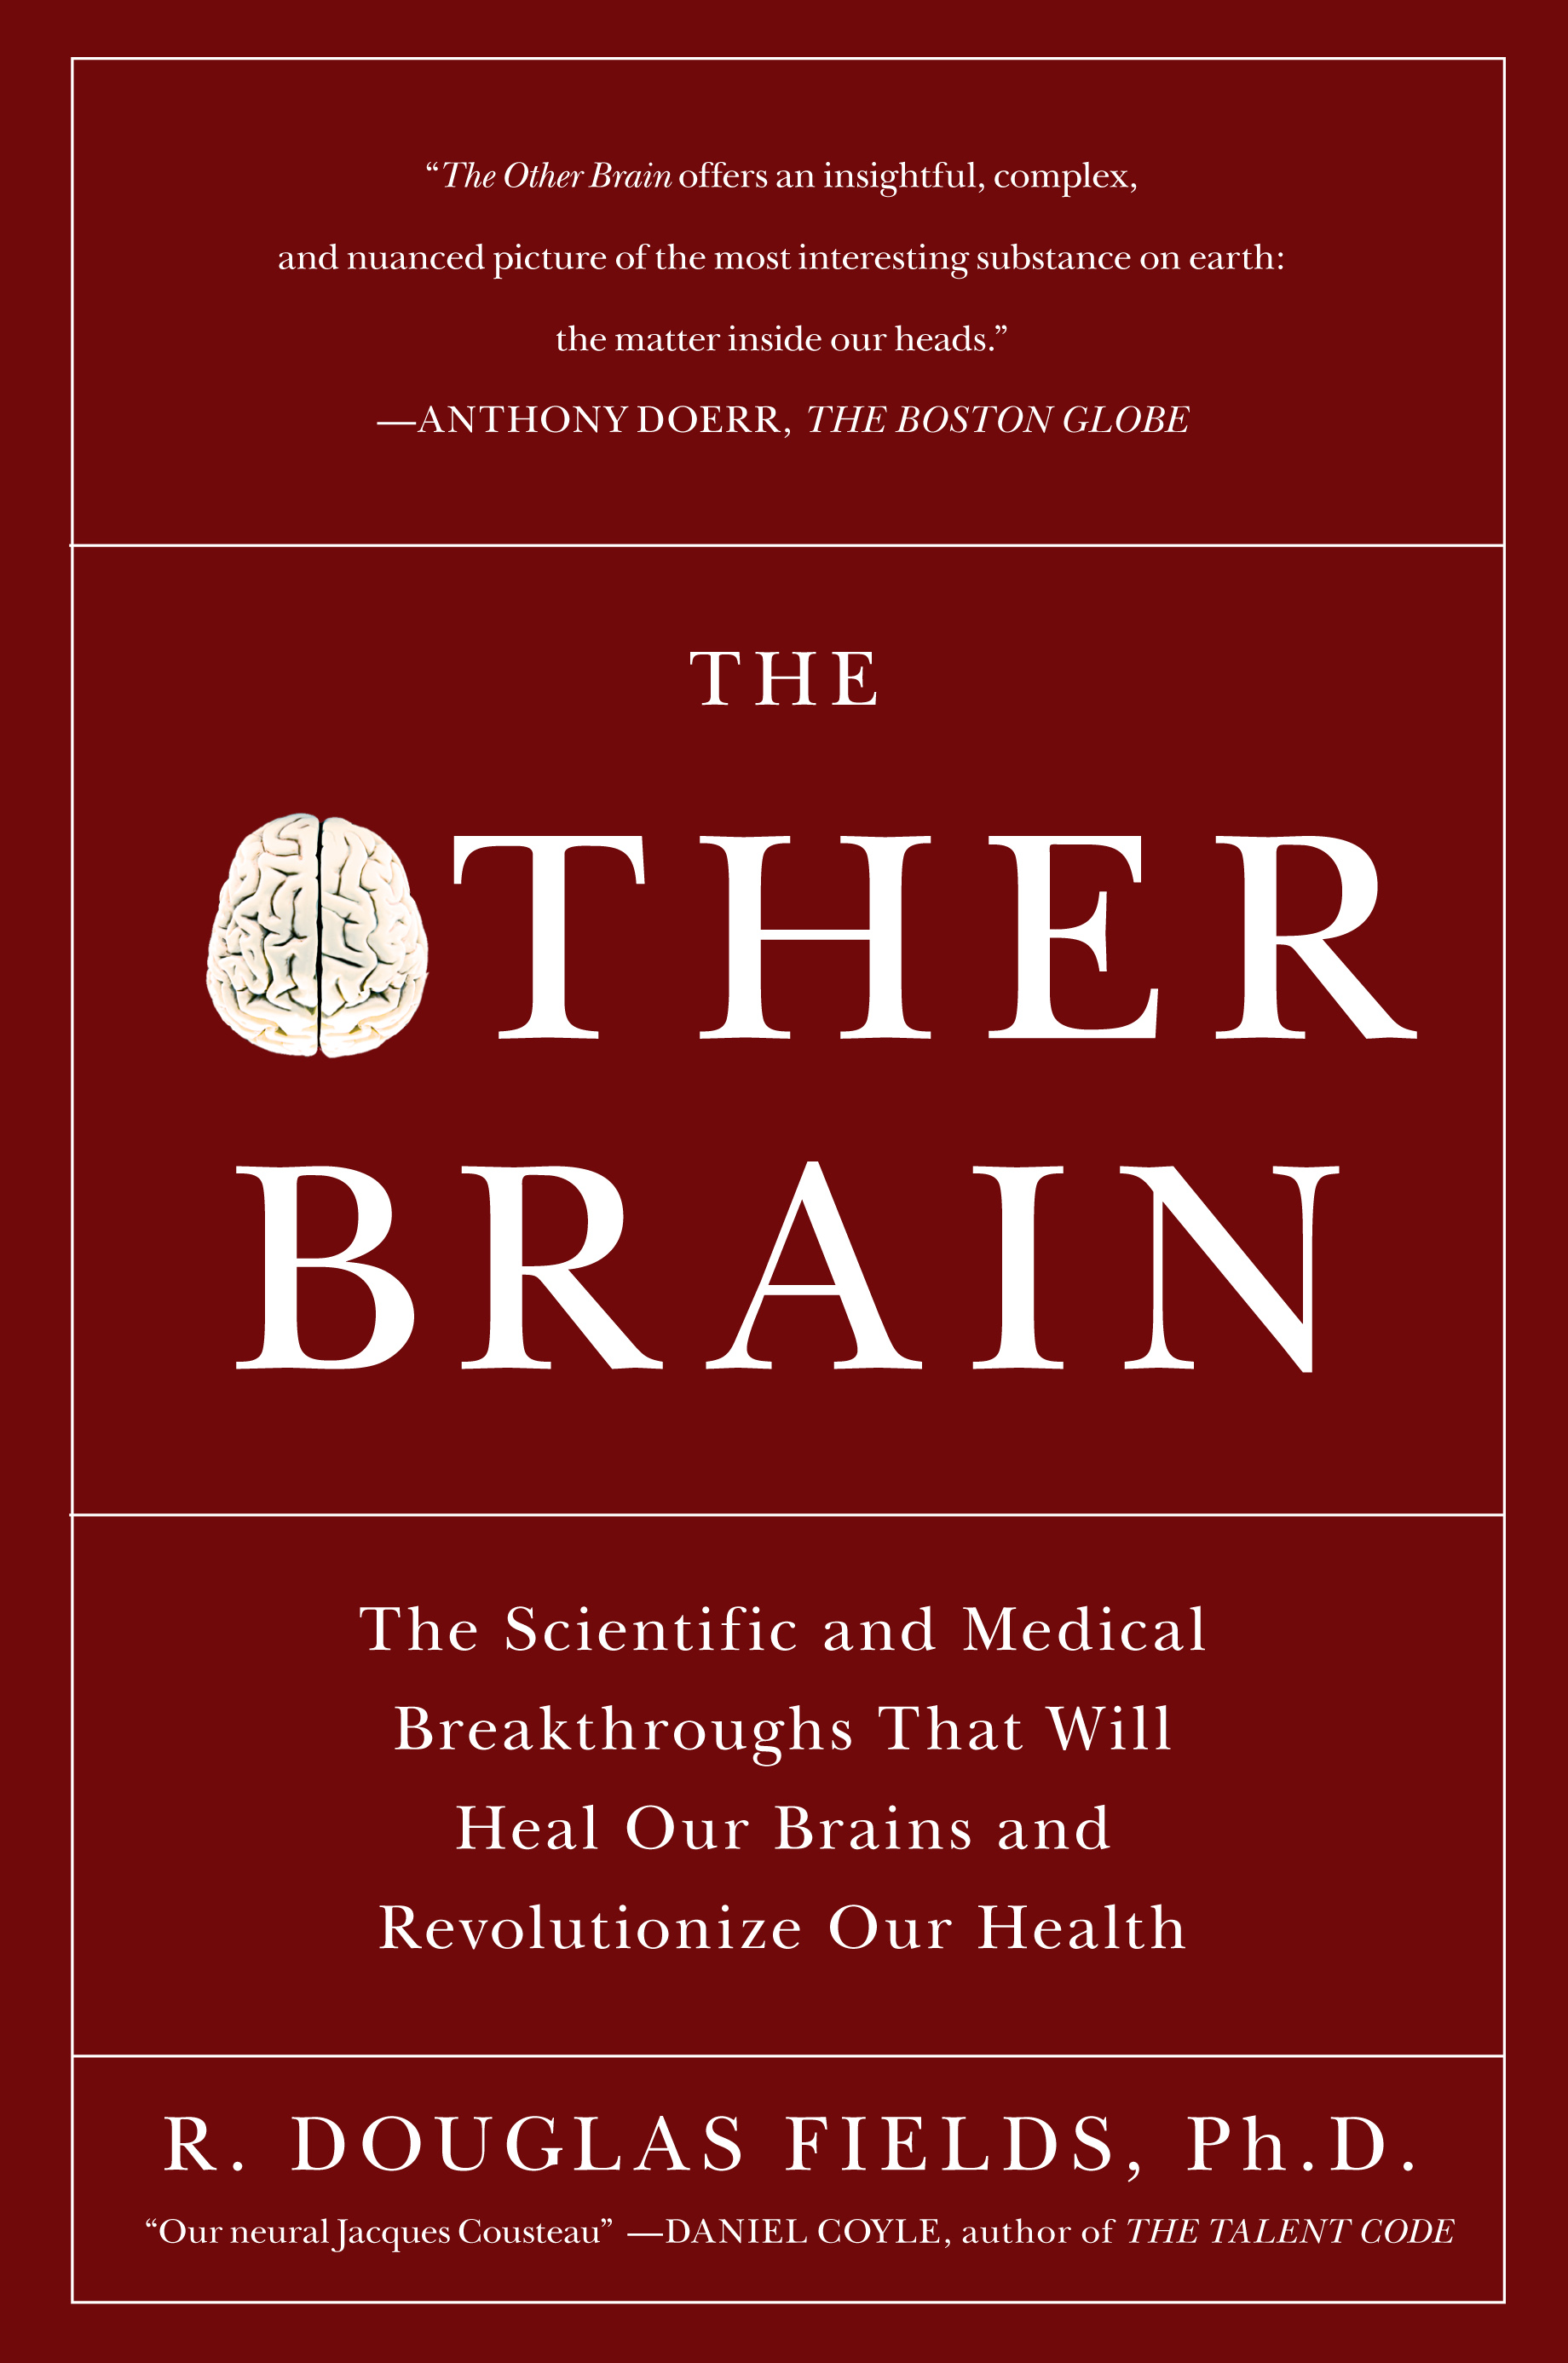 The other brain ebook by r douglas fields official publisher page book cover image jpg the other brain ebook 9781439160435 fandeluxe Images